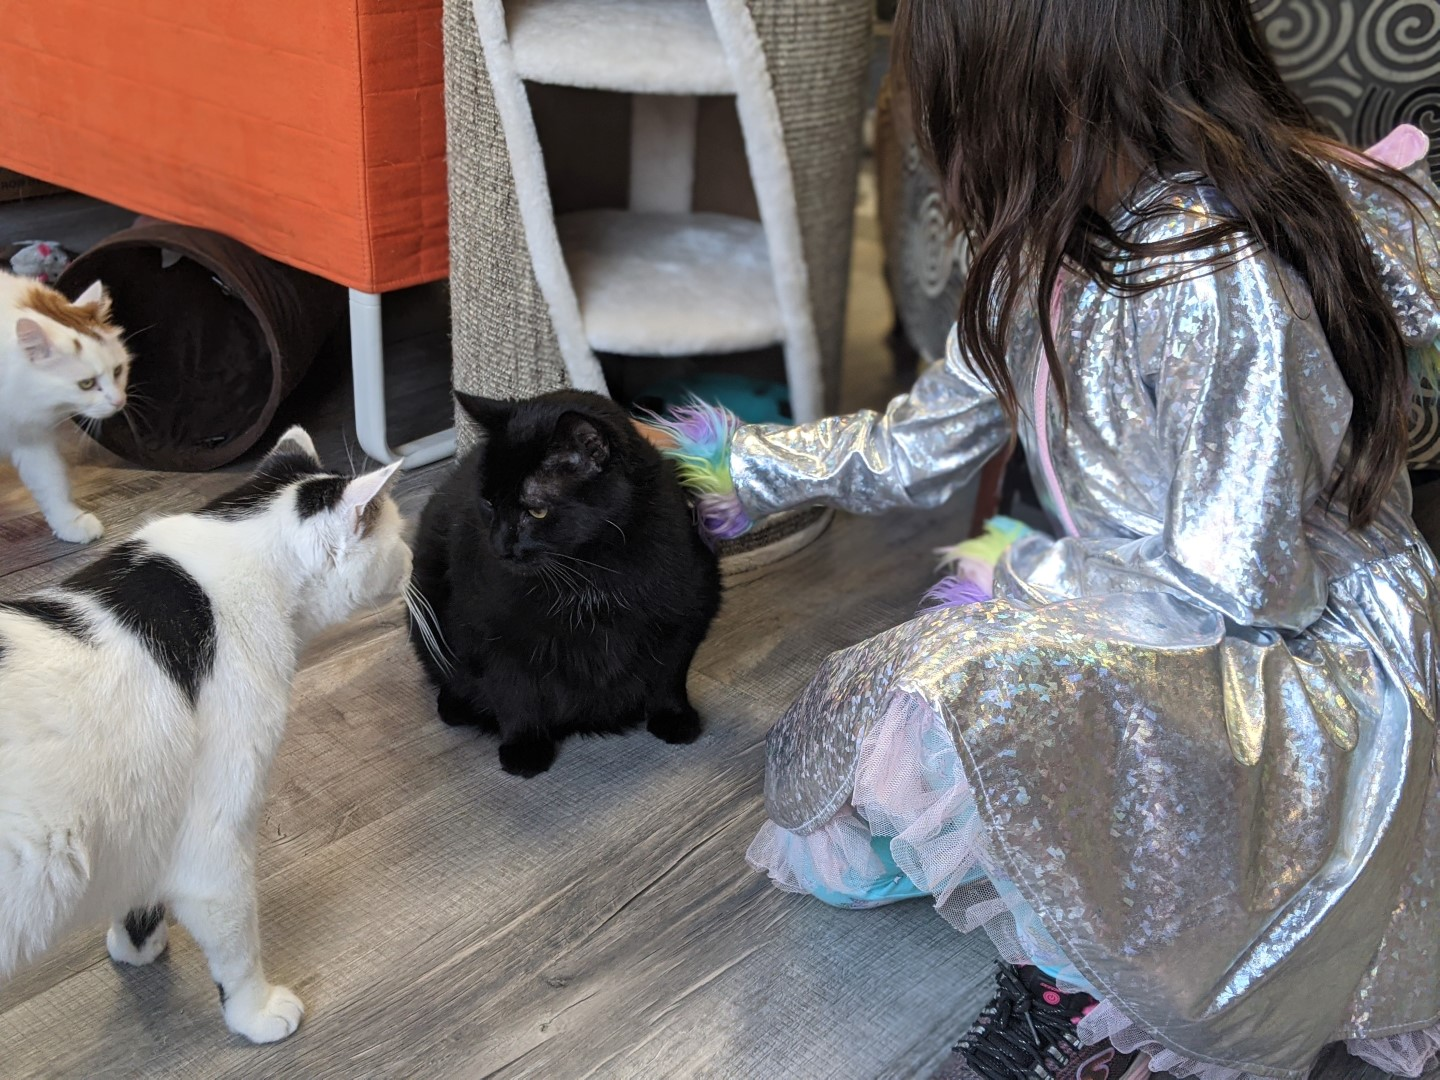 girl petting cats at Alley cat cafe in Stratford